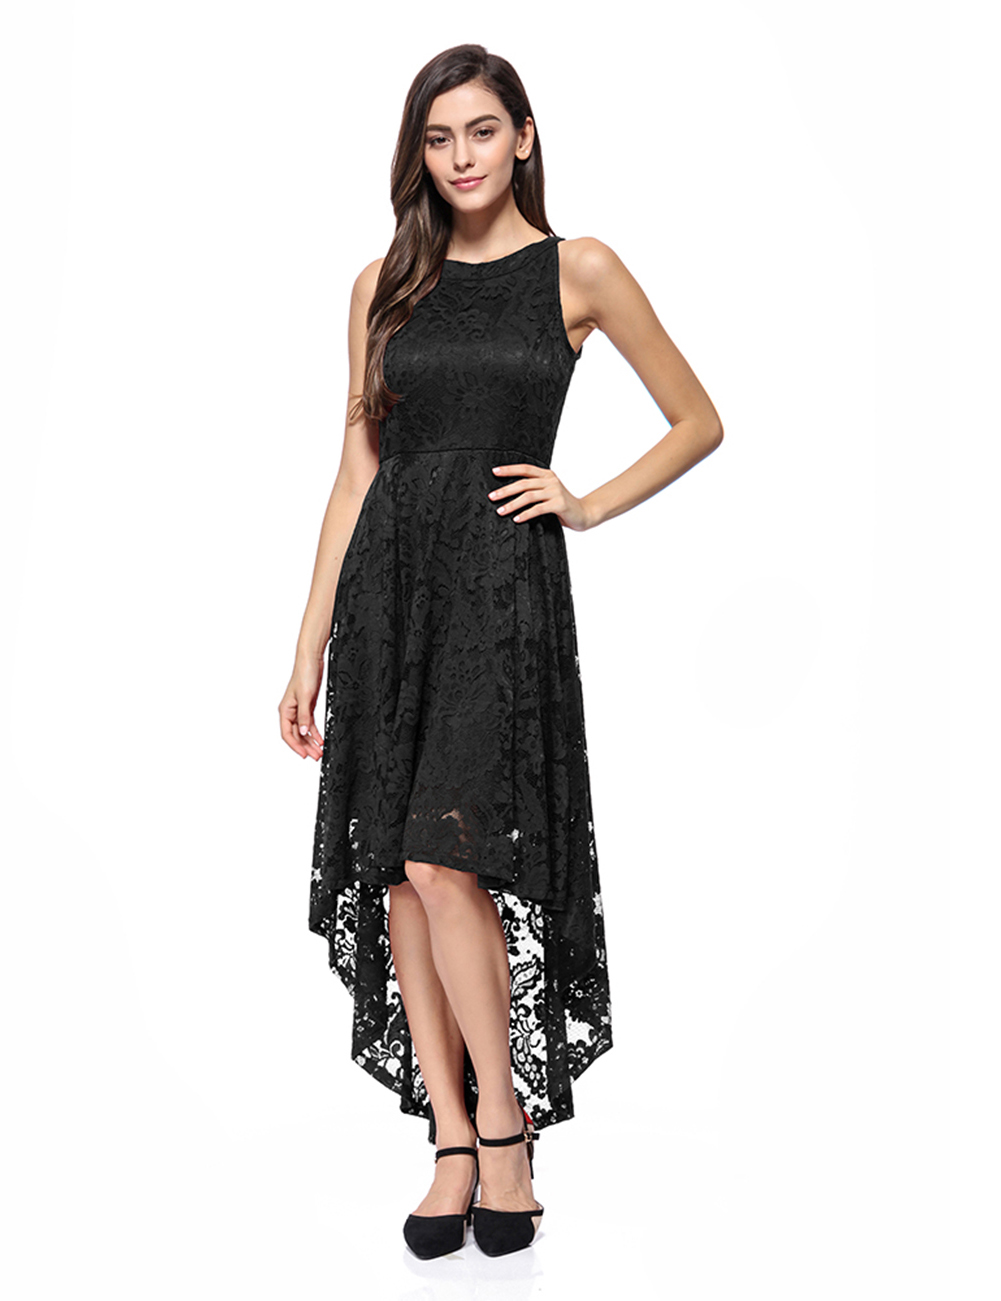 //cdn.affectcloud.com/feelingirldress/upload/imgs/2019-06-11/VZ190800-BK1/VZ190800-BK1-4.jpg